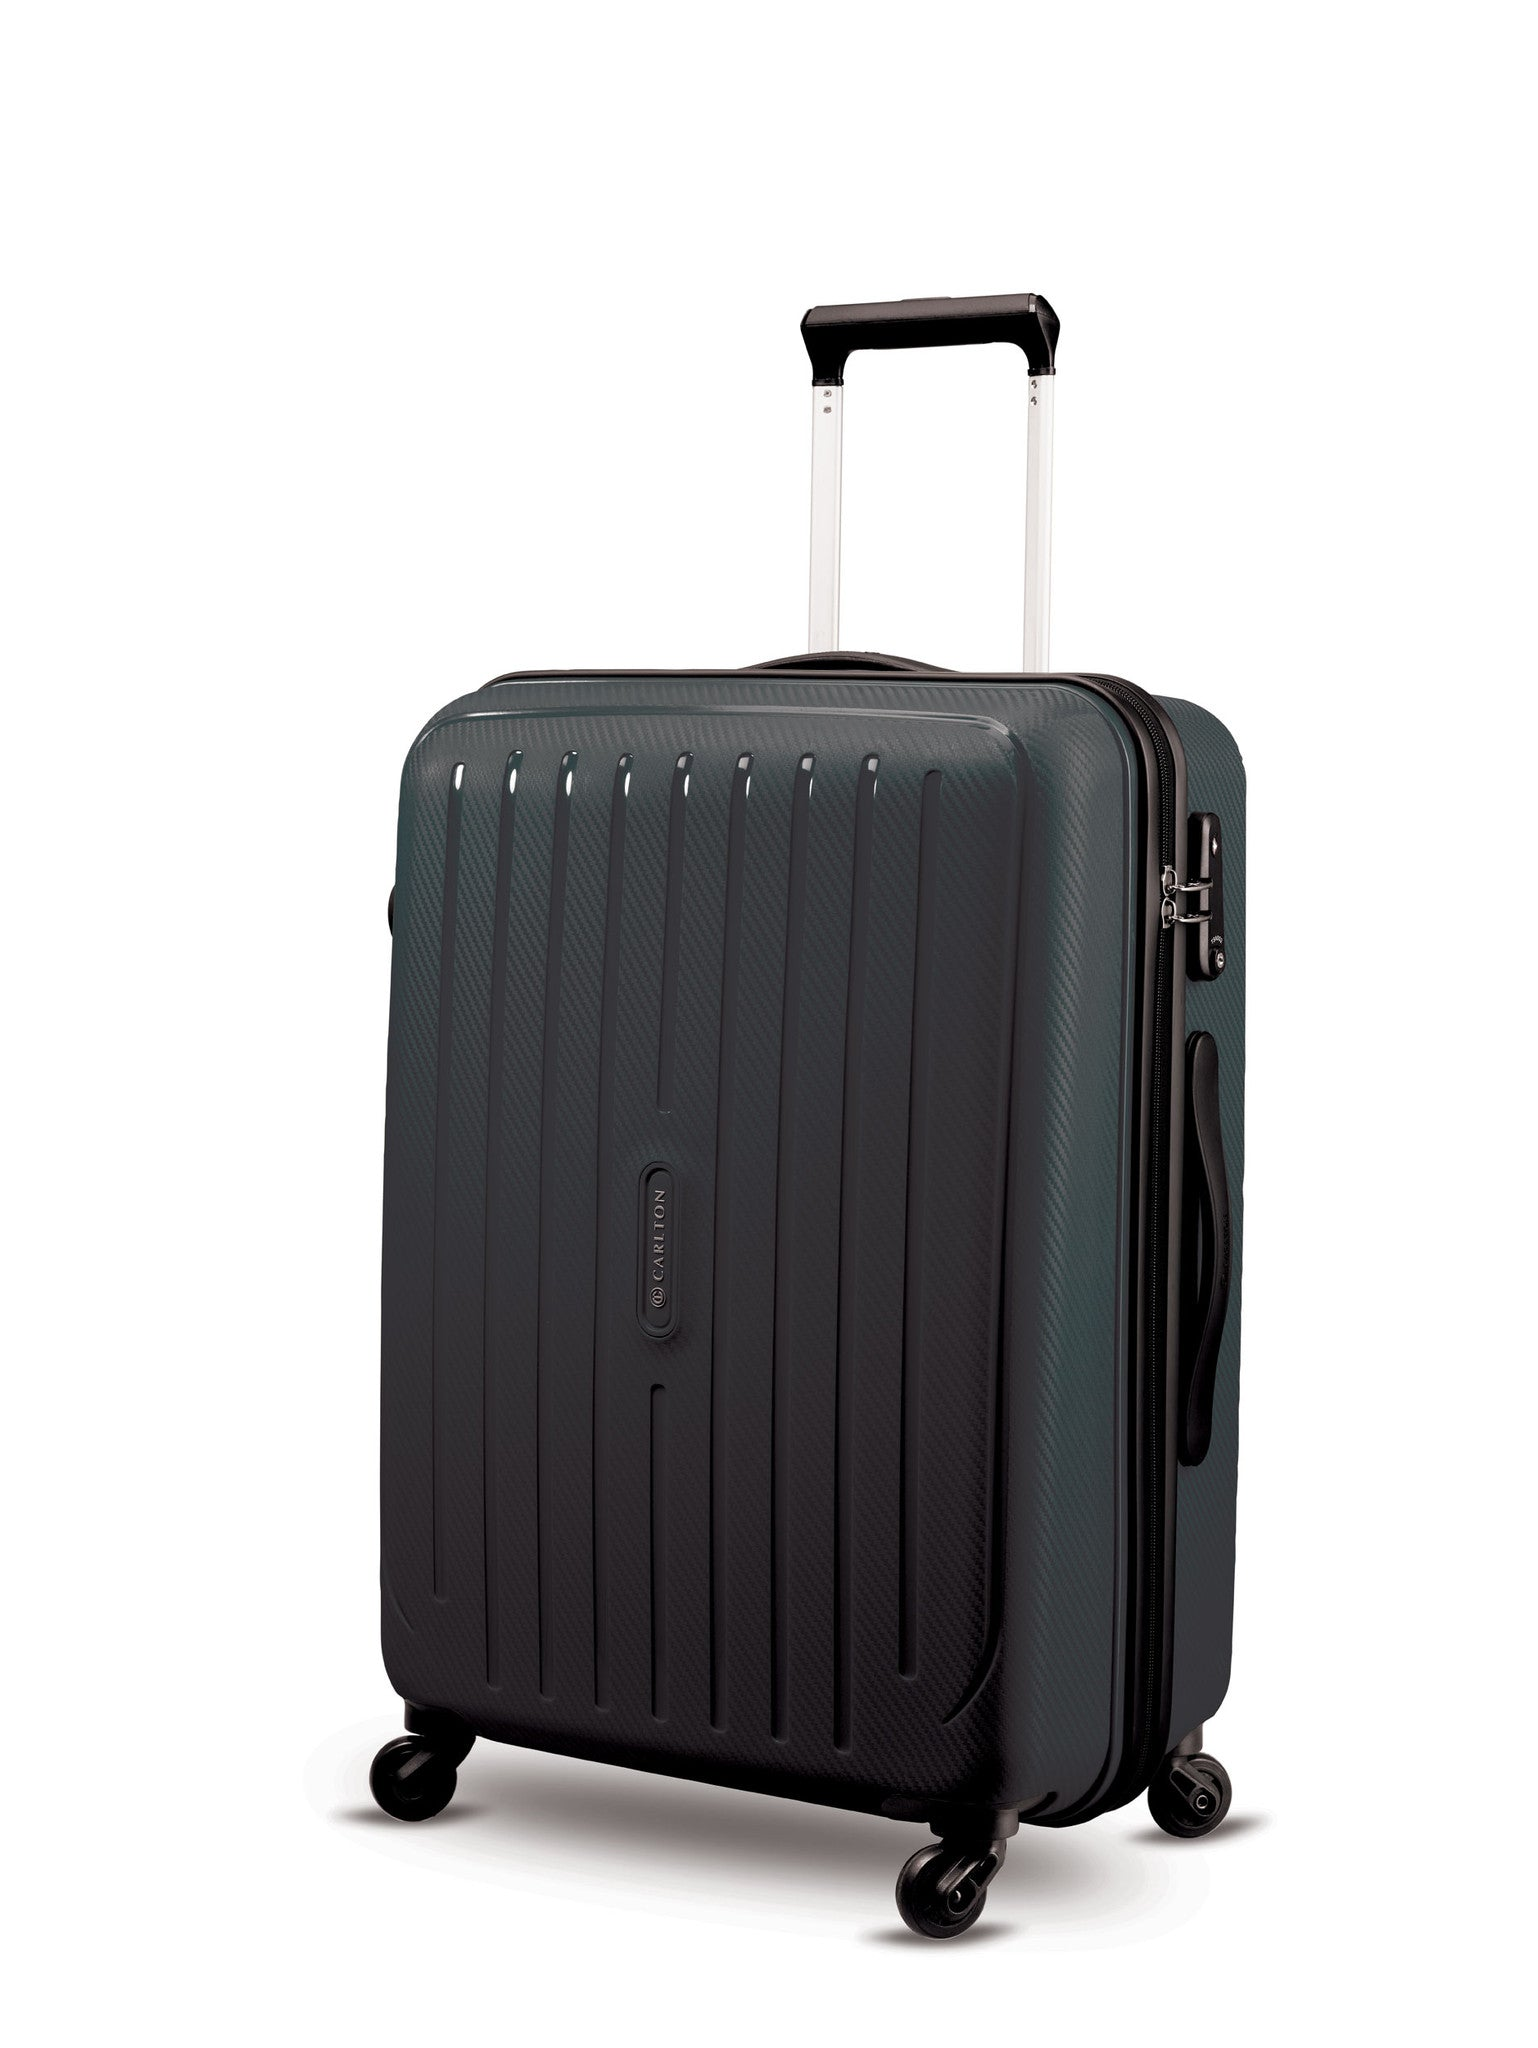 Carlton Phoenix 65cm Size Trolley Case Black